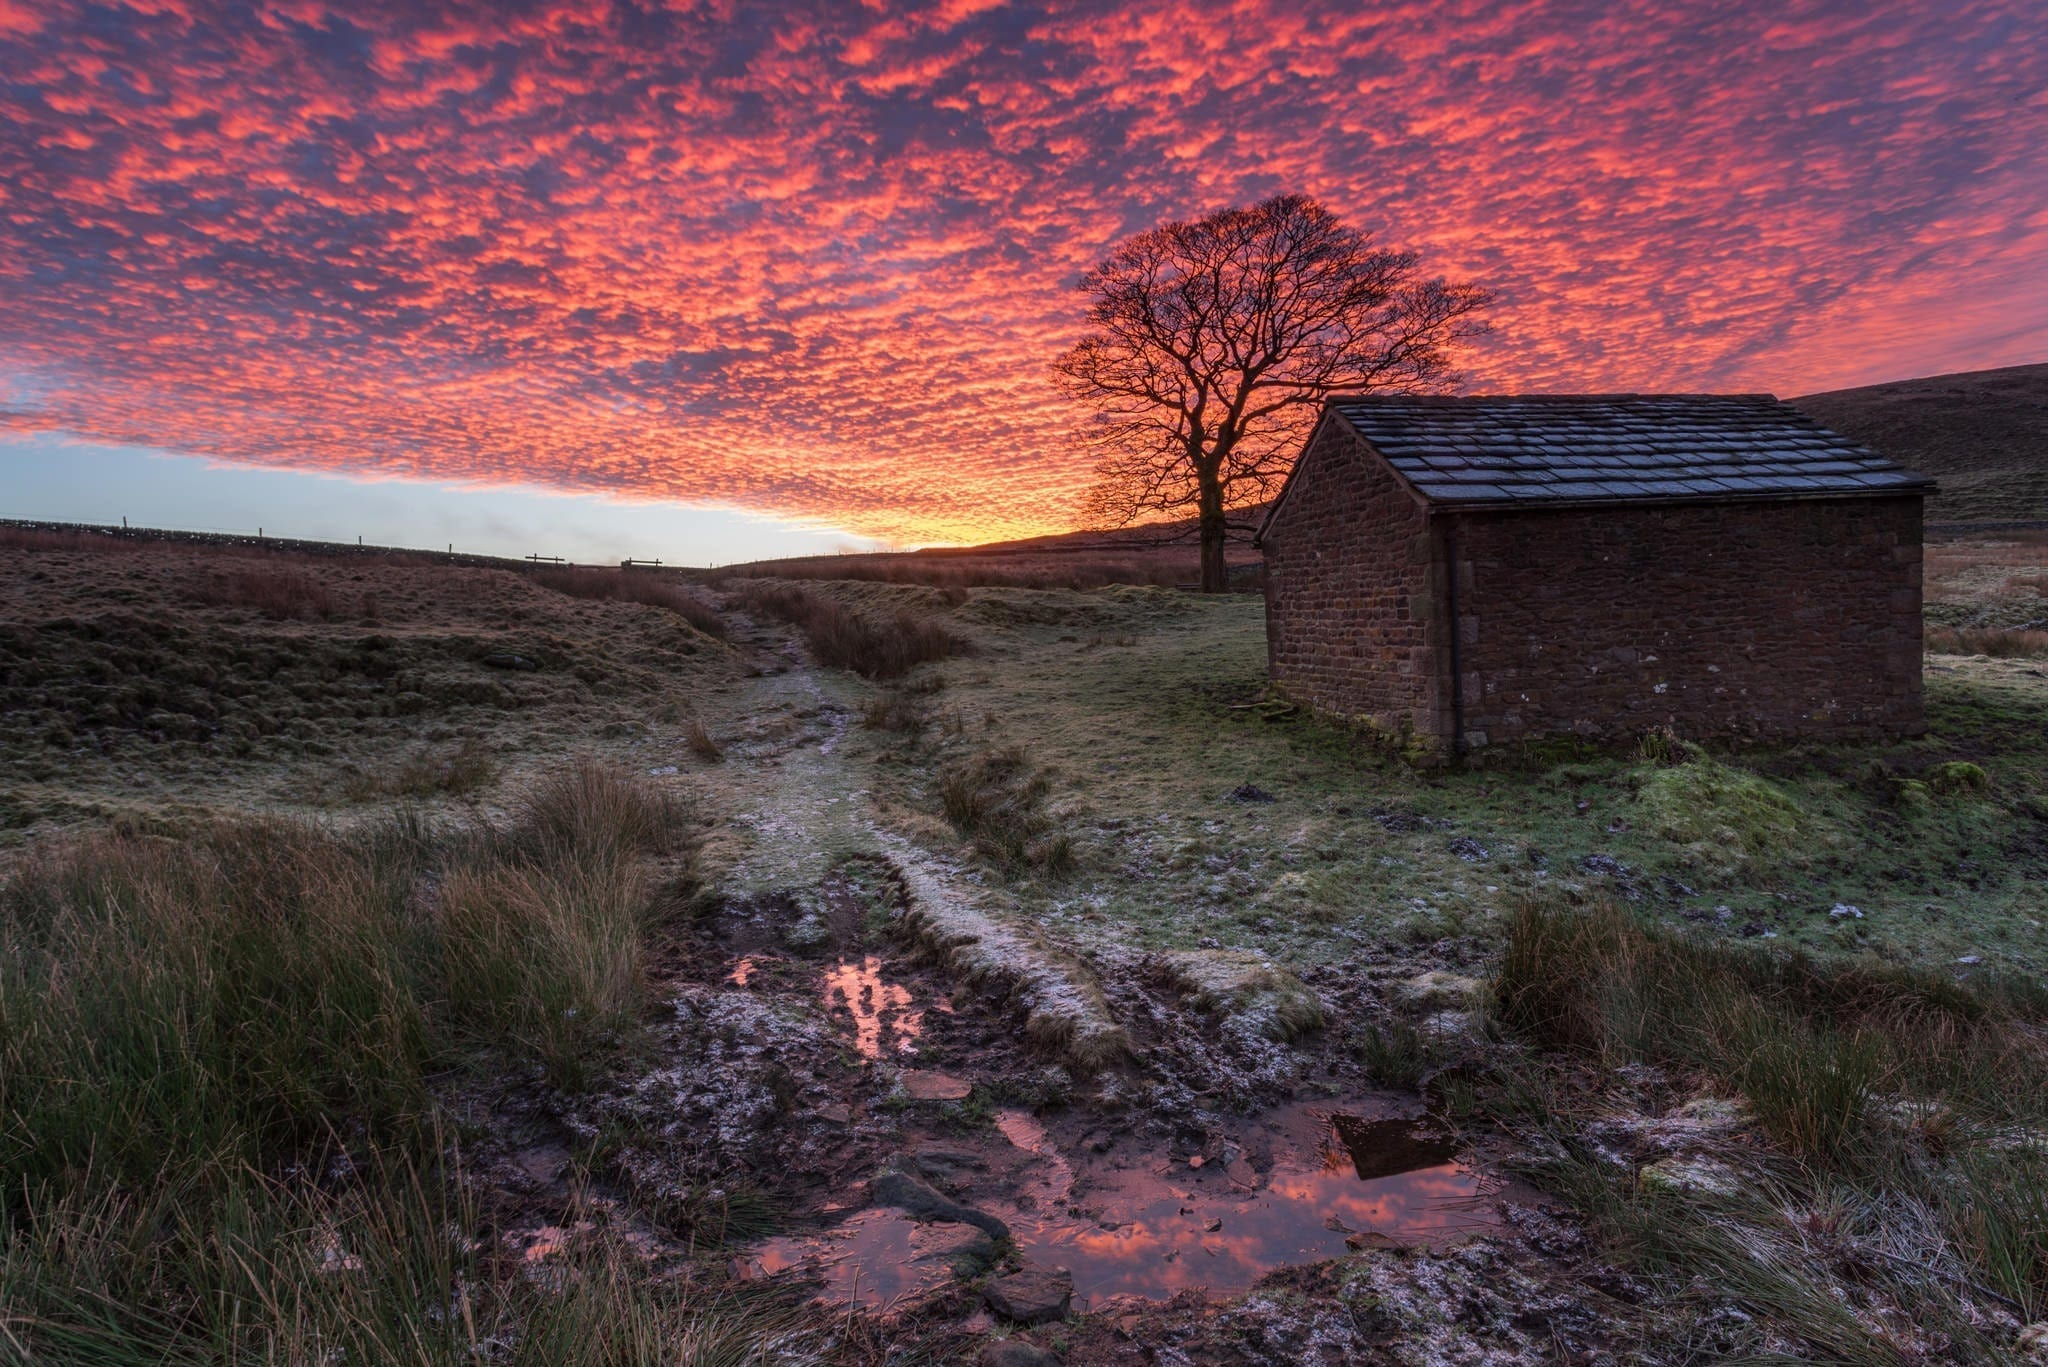 Wildboarclough Barn Sunrise - Peak District Through The Lens Photography Workshop